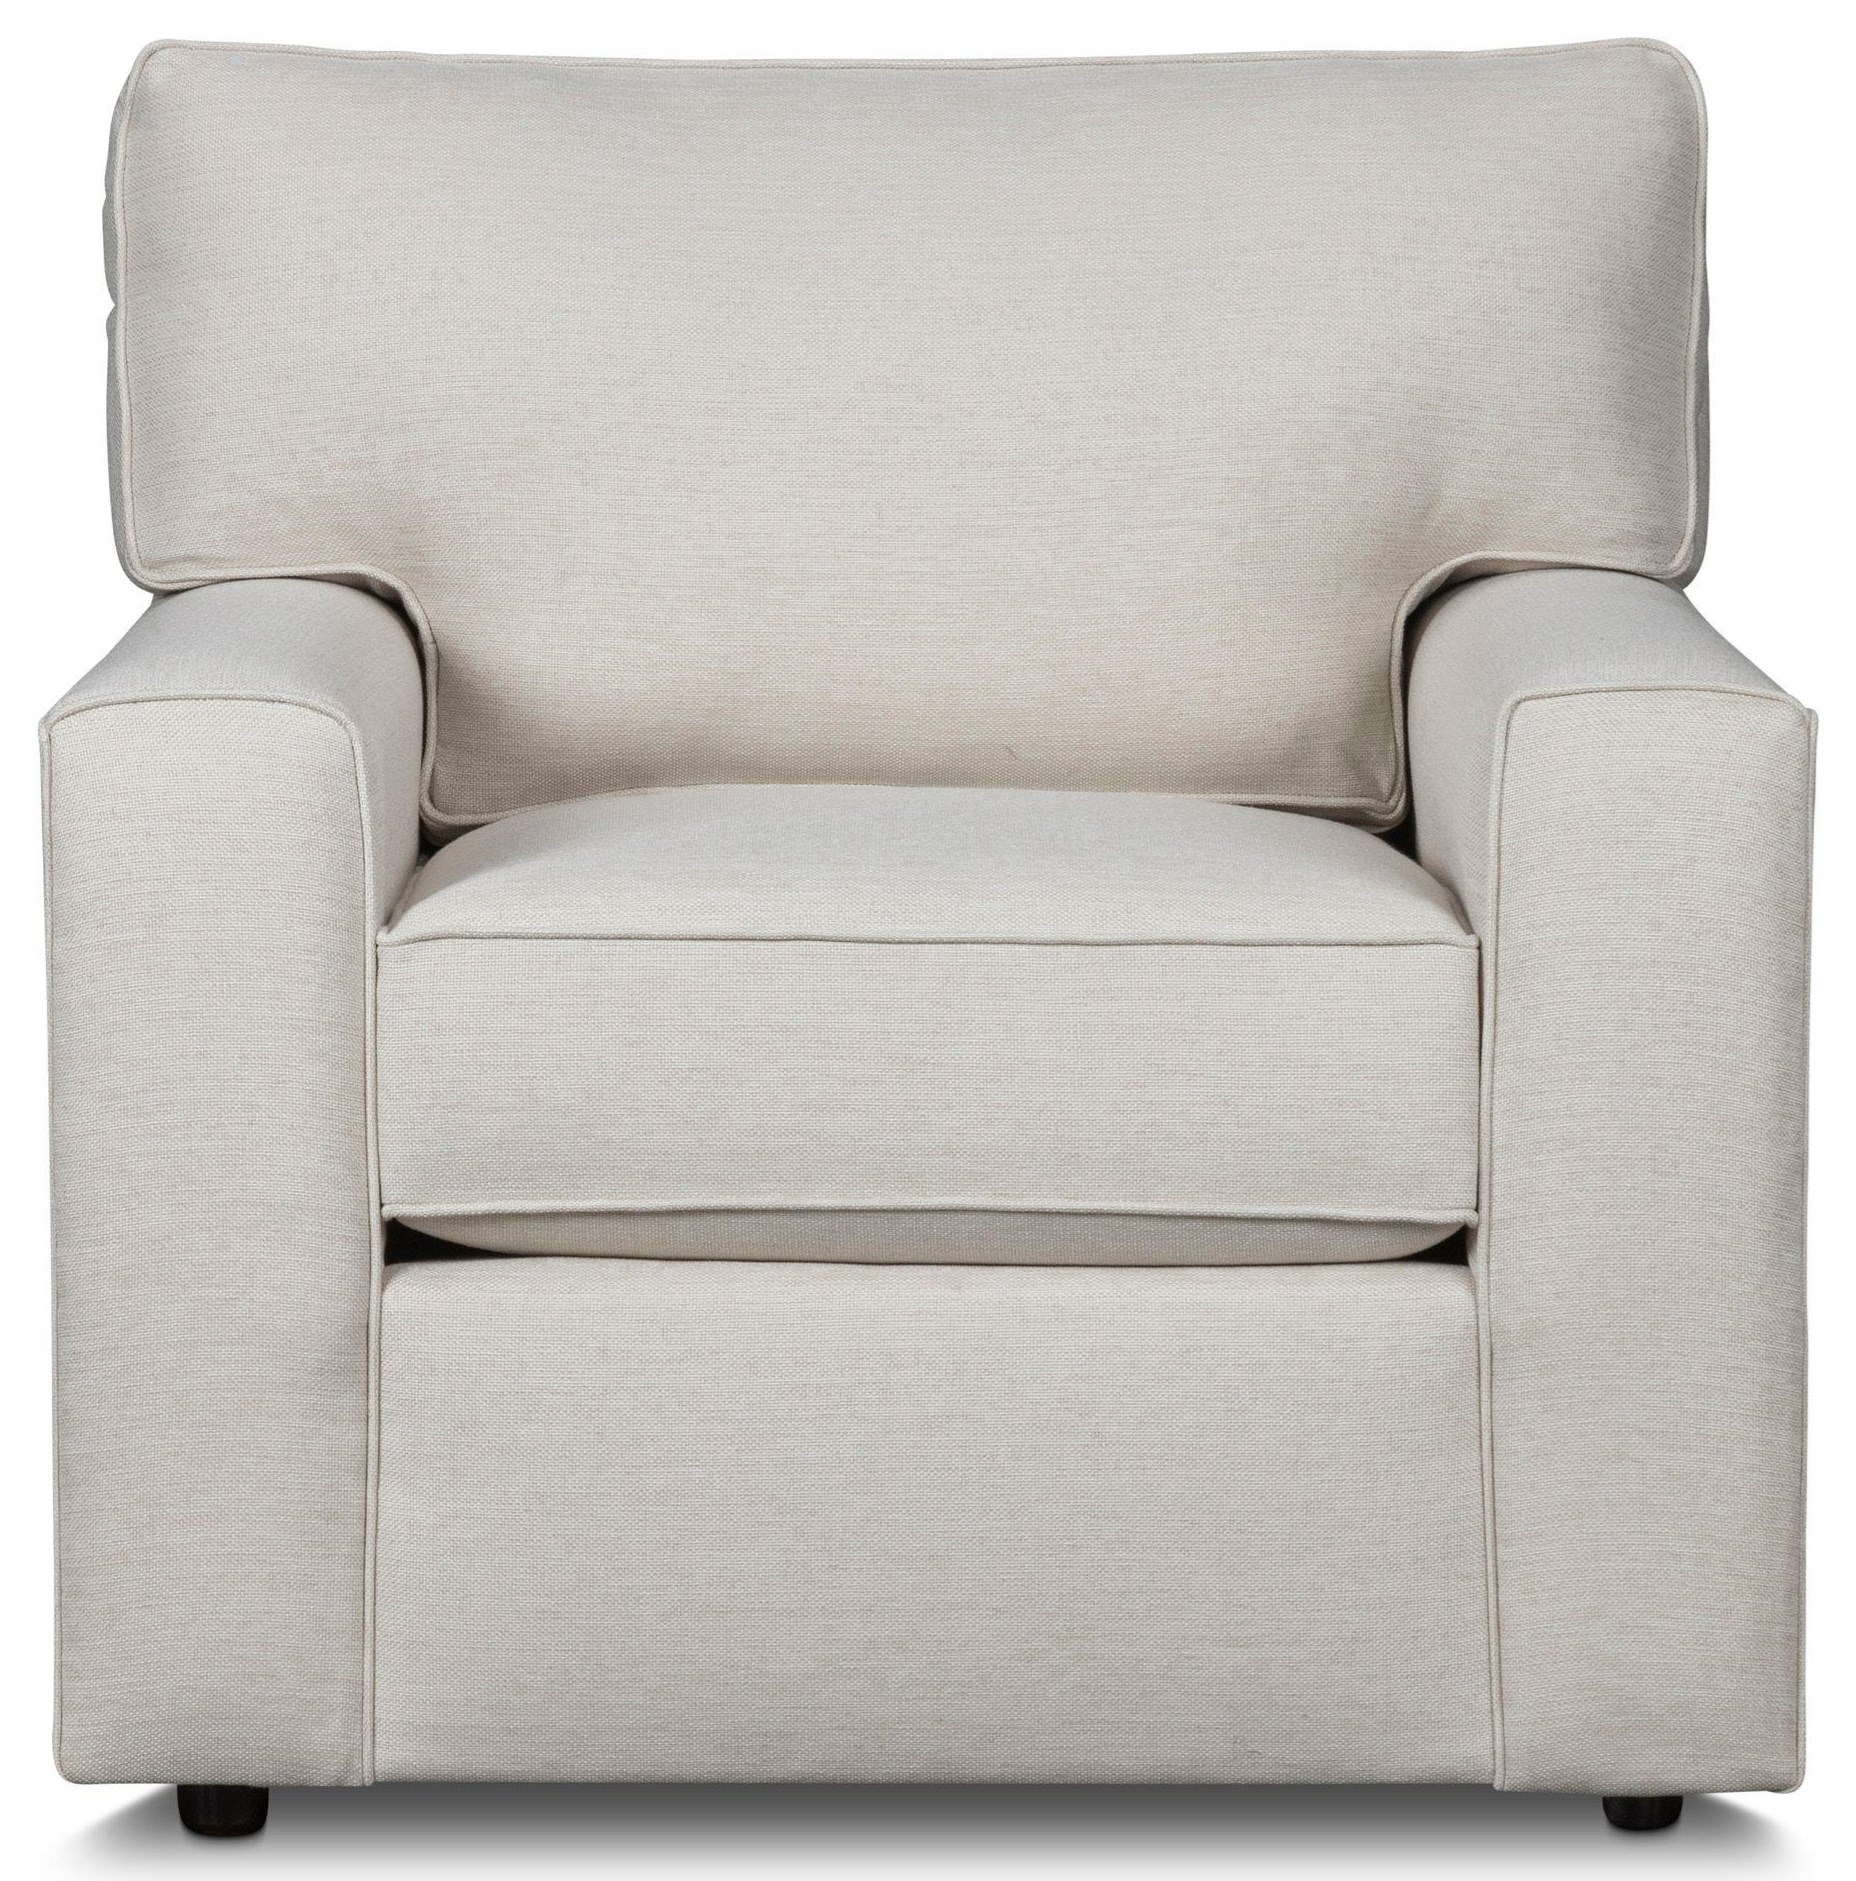 Leigh Accent Chair by Stone & Leigh Furniture at Baer's Furniture